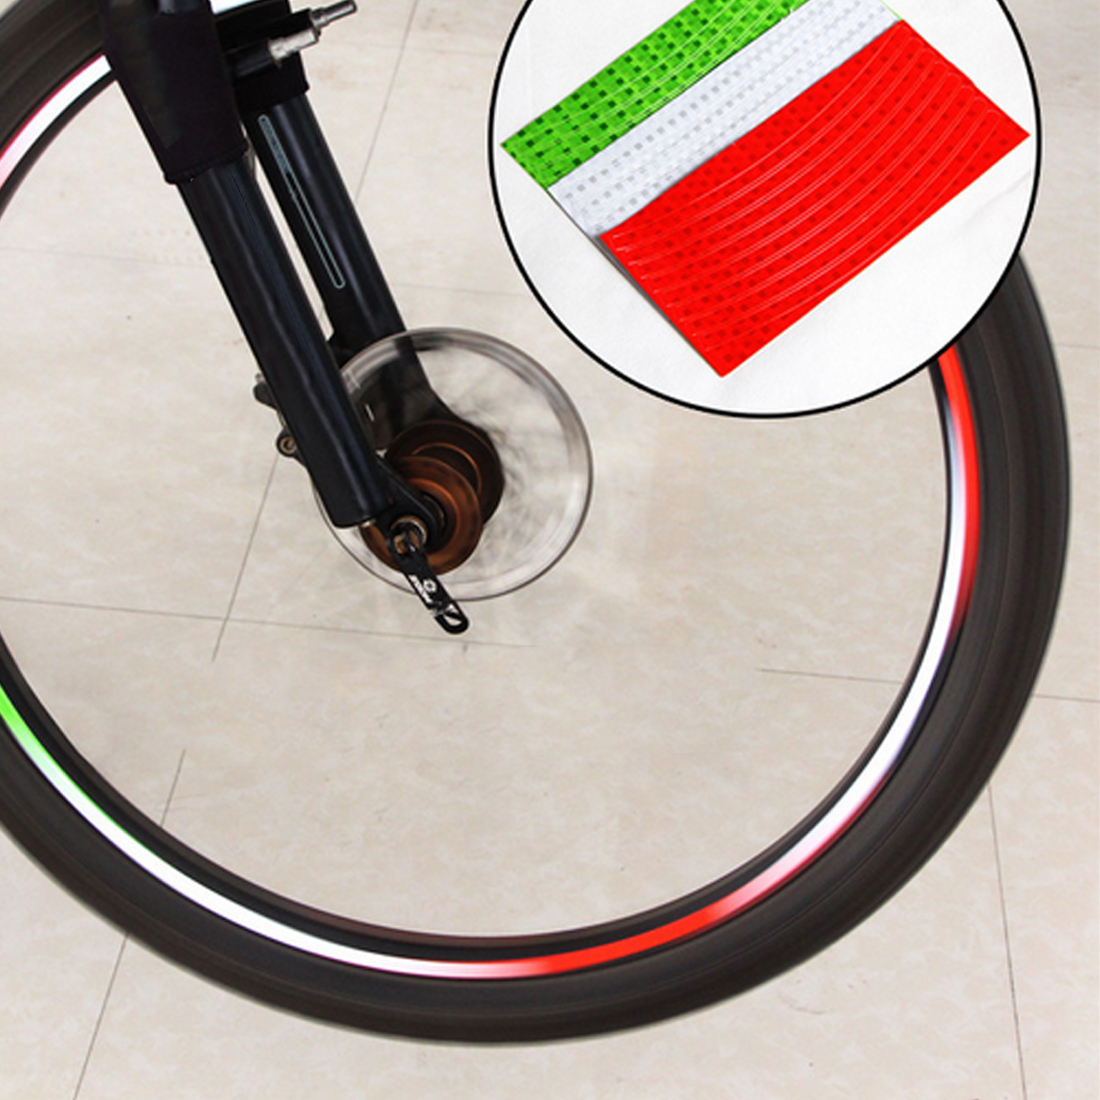 Dewtreetali Fluorescent MTB Bike Bicycle Motorcycle Wheel Tire Tyre Reflective Stickers Decal Tape Safety Silver For Bike